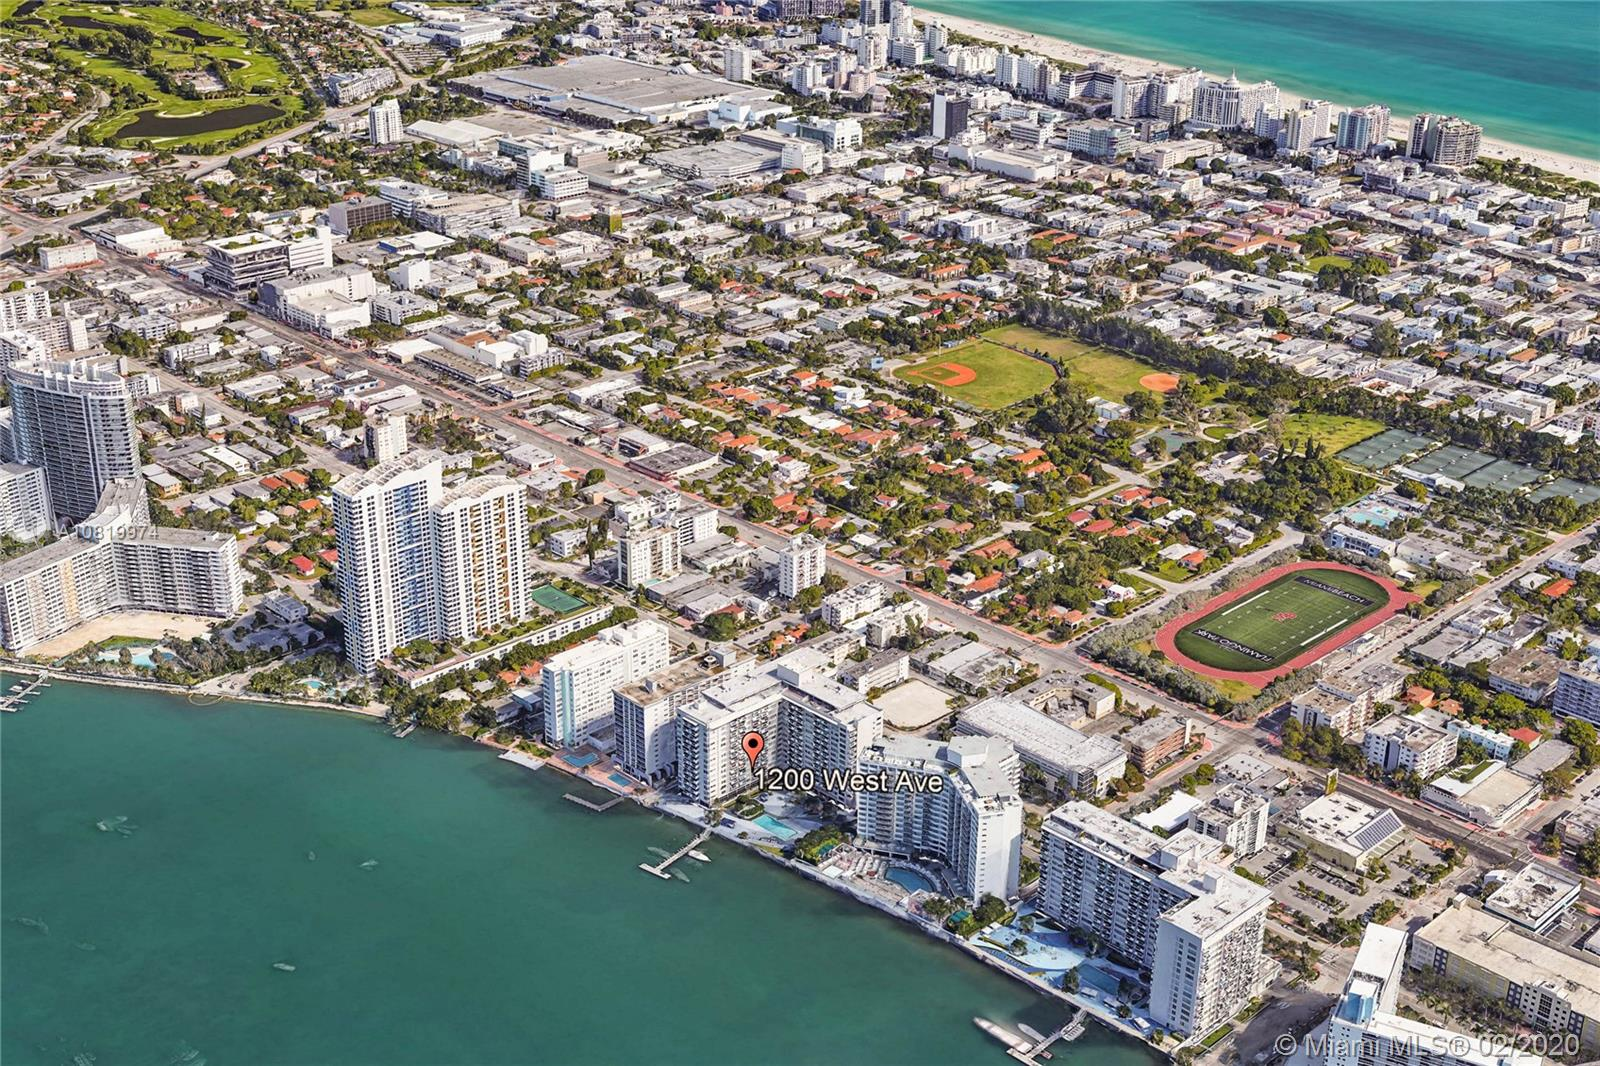 Mirador North #524 - 1200 West Ave #524, Miami Beach, FL 33139